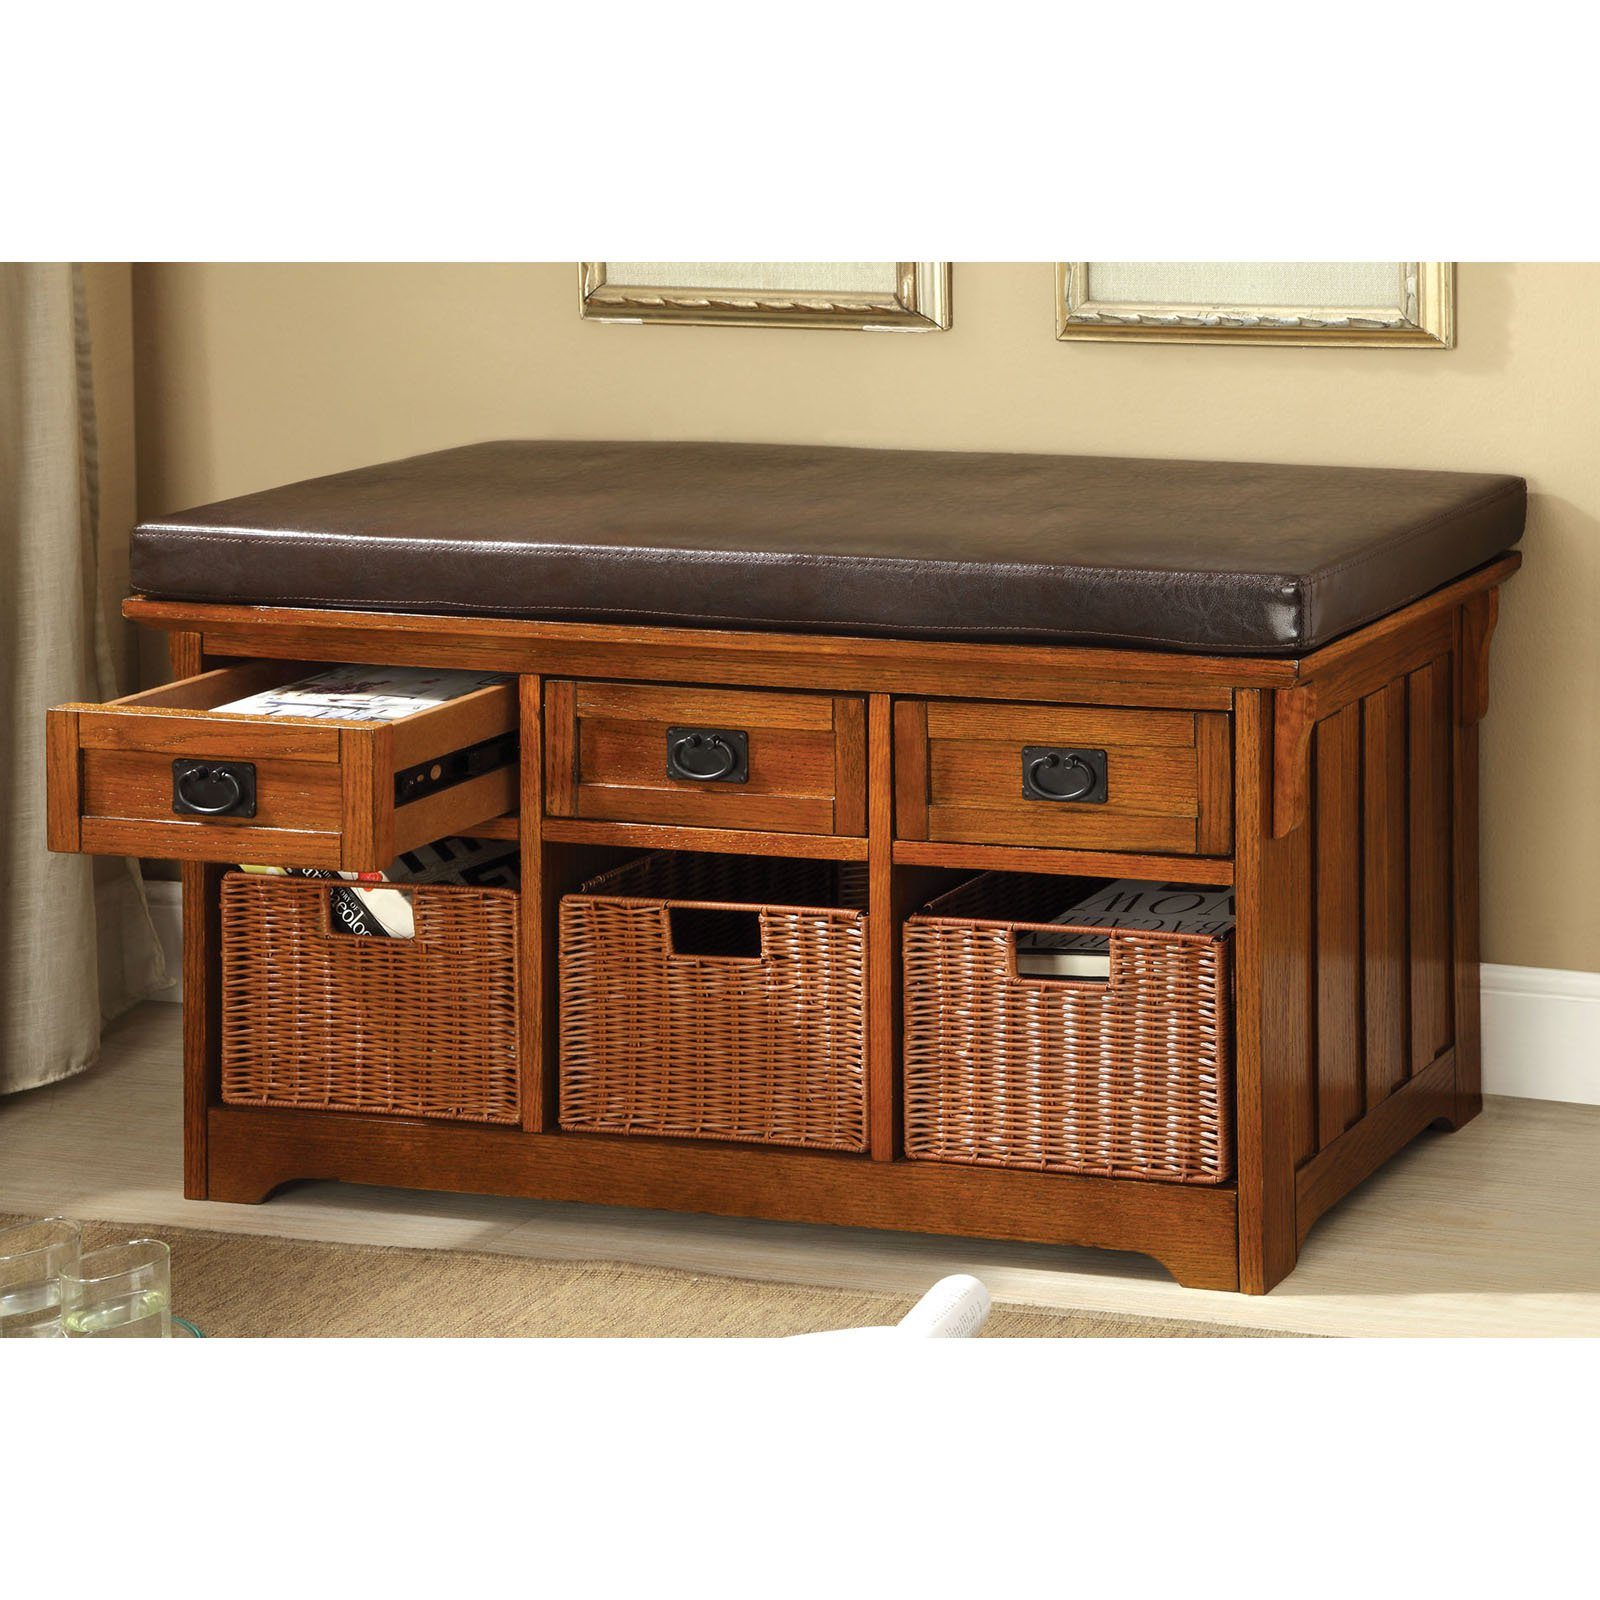 Furniture Of America Doreen Padded Leatherette Bench With Storage Baskets    Antique Oak   Walmart.com